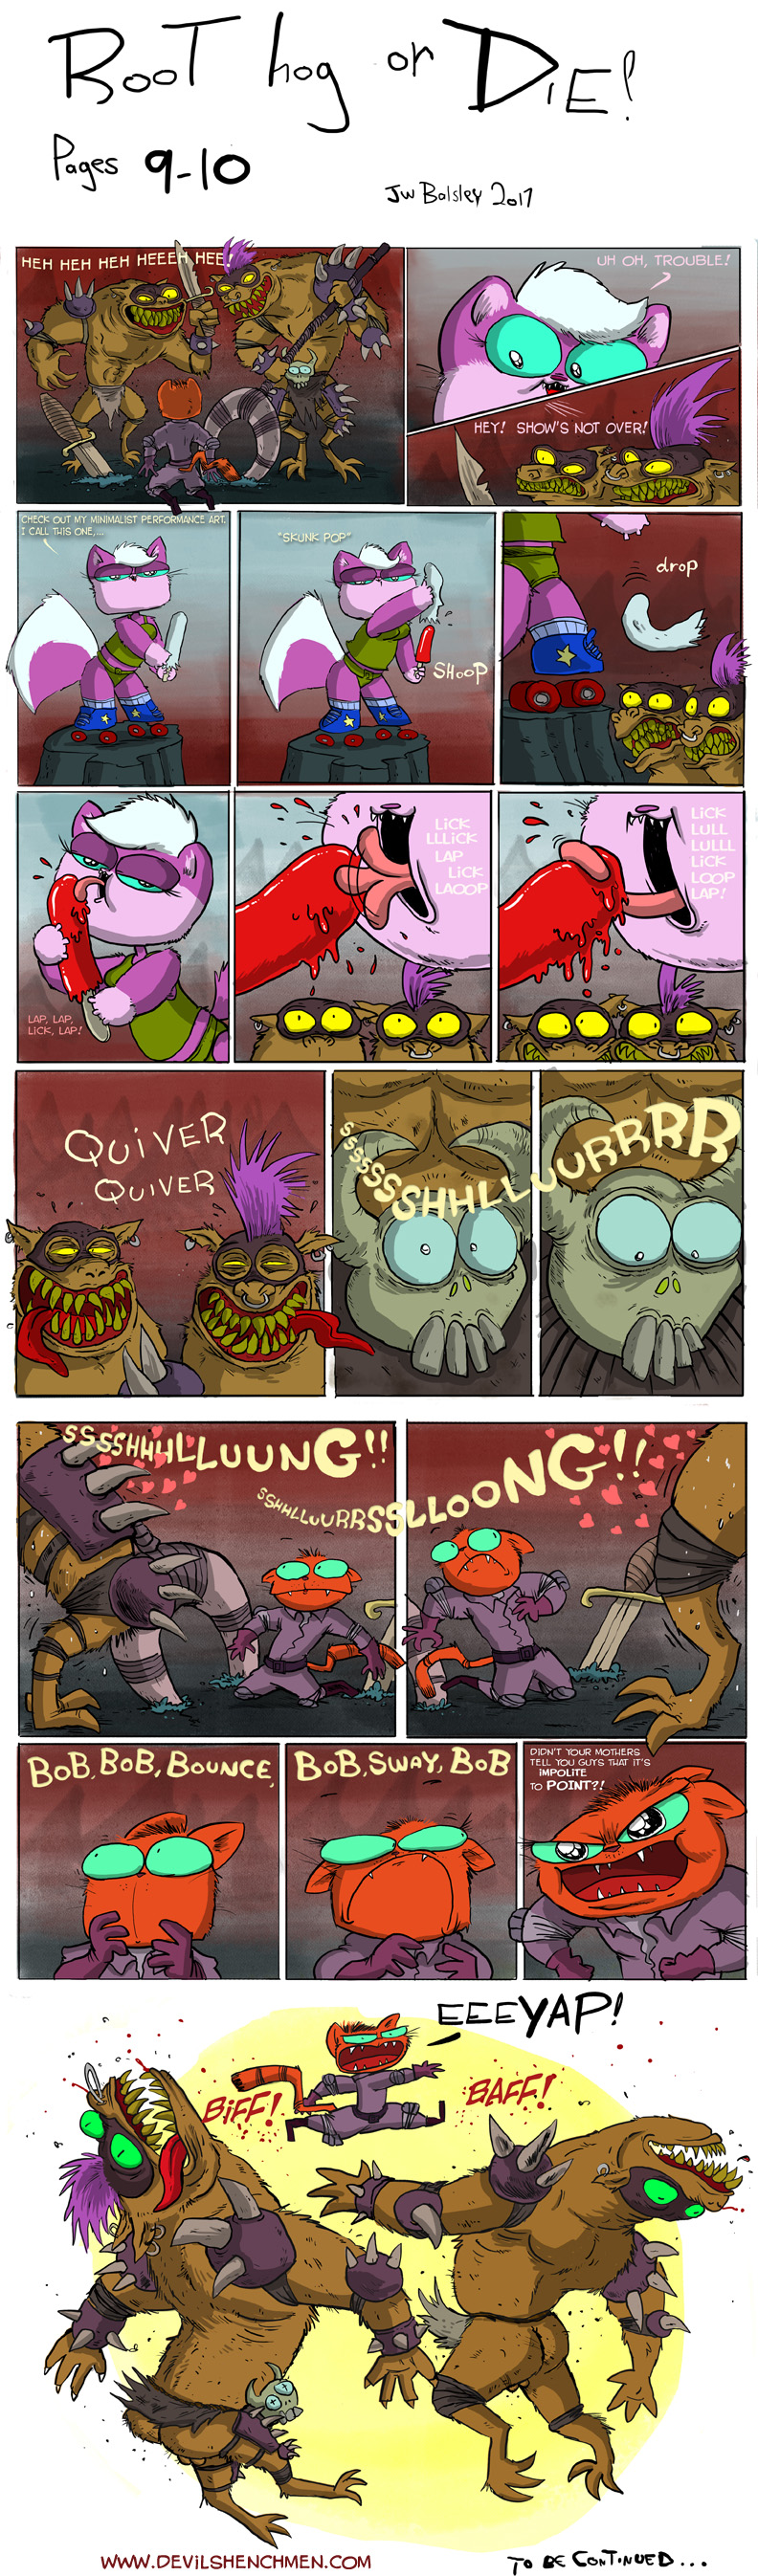 Root Hog or Die pages 9 and 10